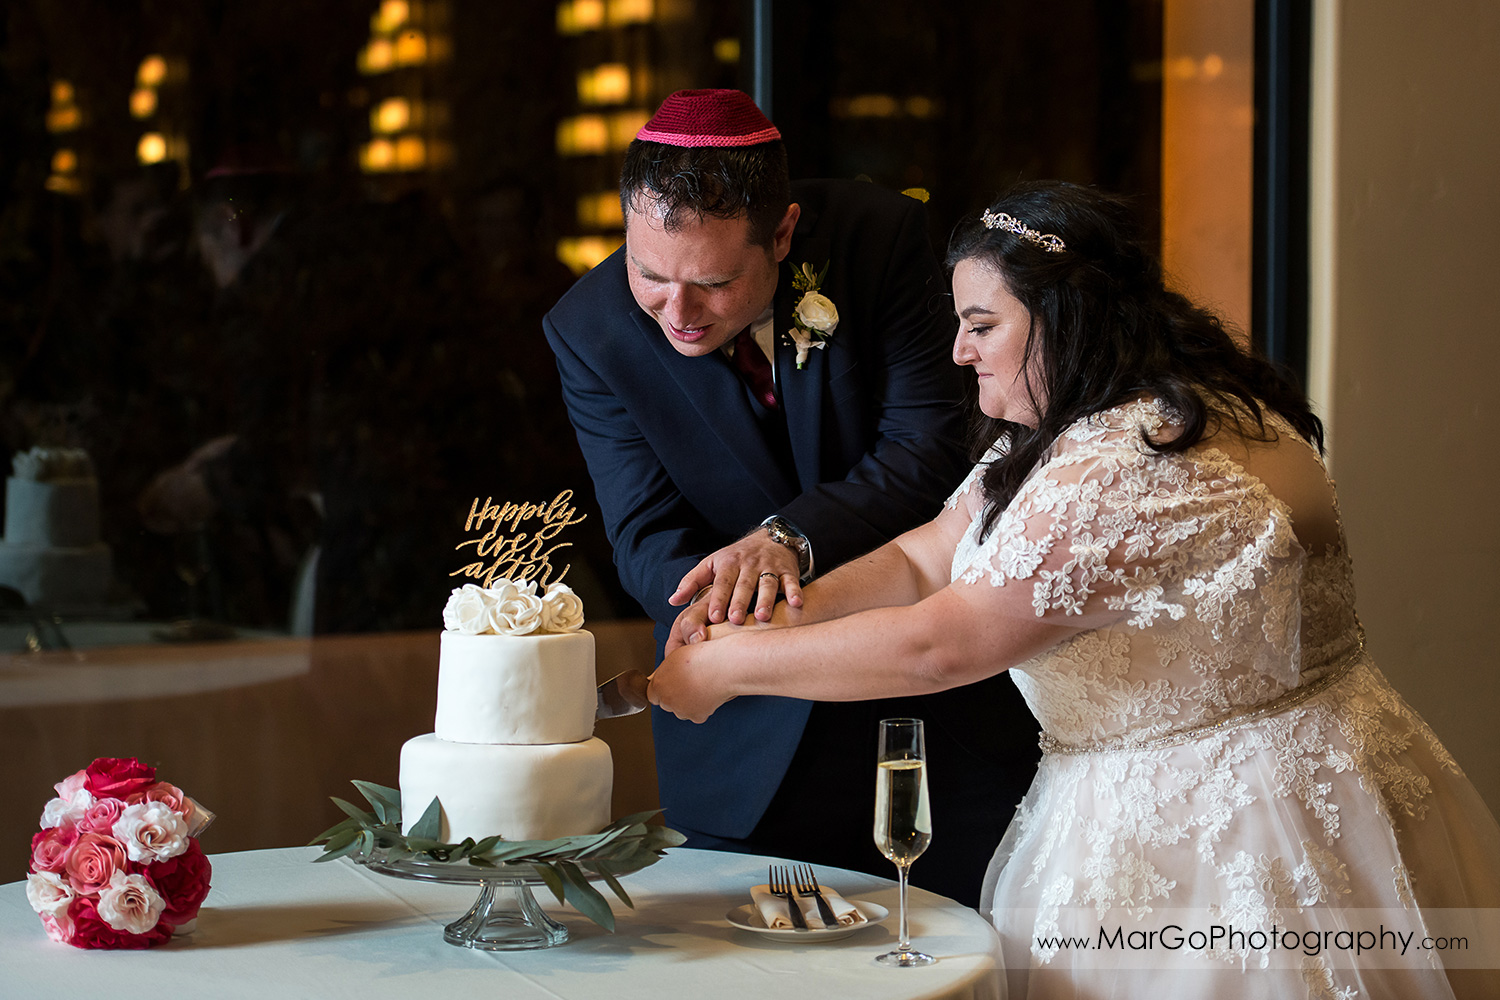 jewish bride and groom cutting cake during wedding reception at Livermore Garre Vineyard and Winery